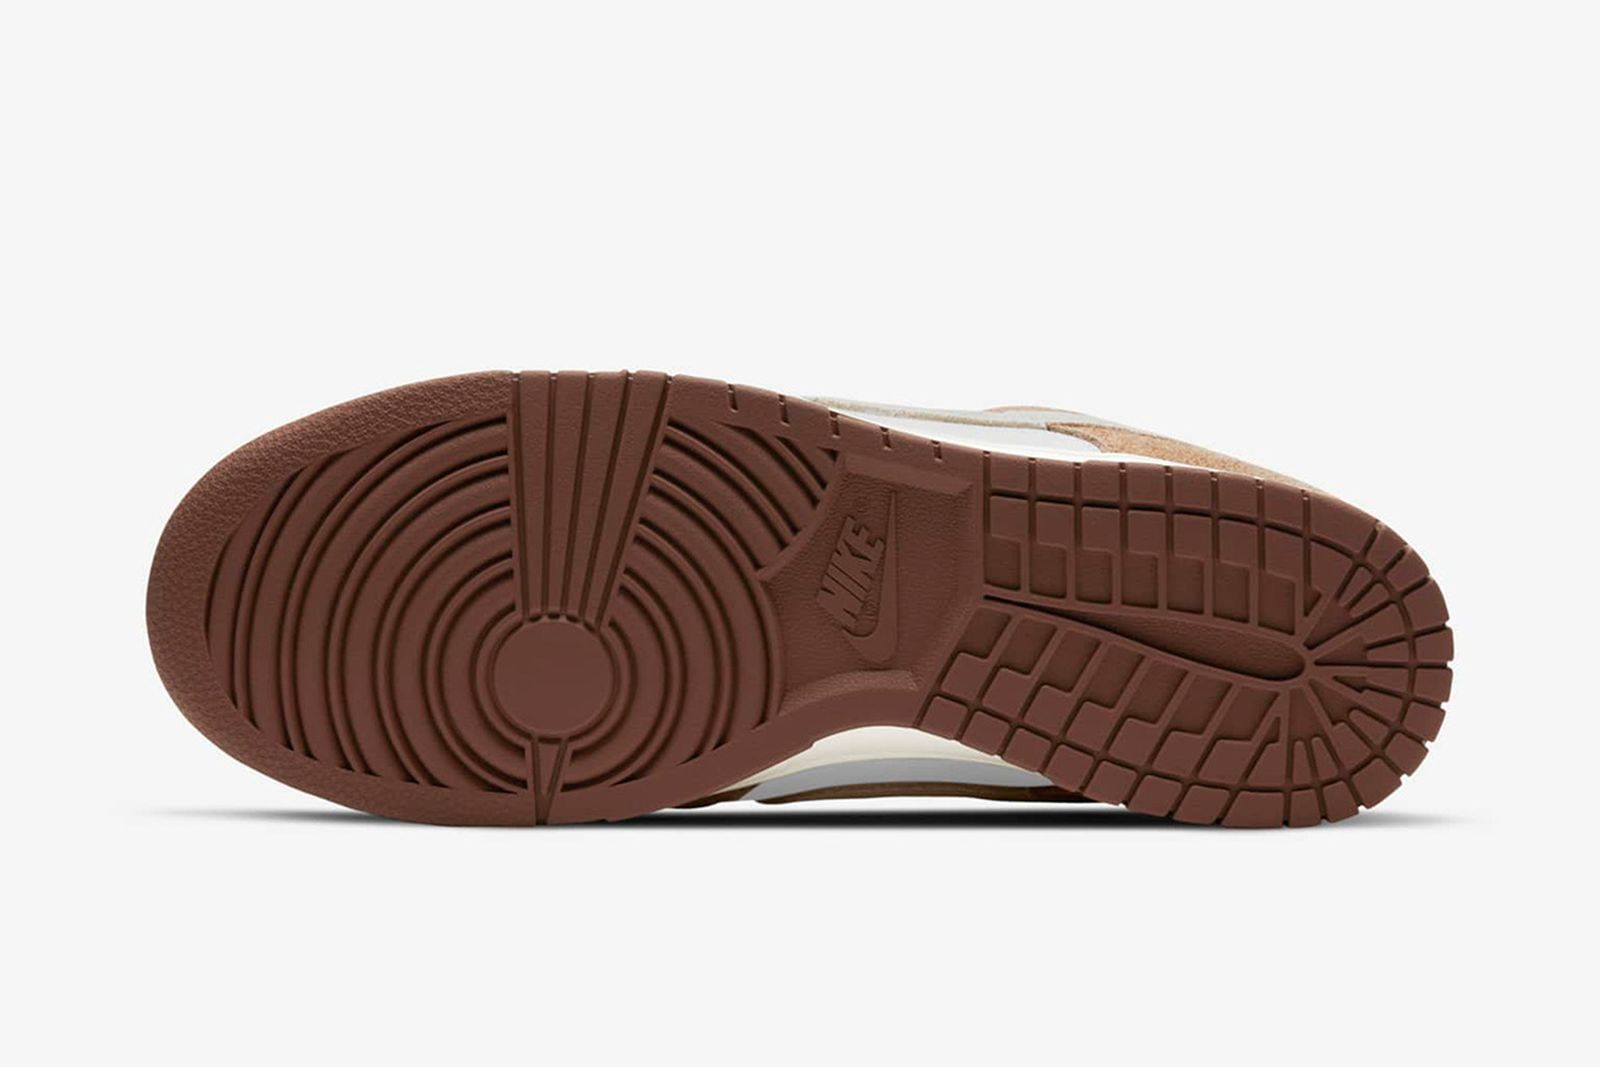 nike-dunk-low-medium-curry-release-info-05